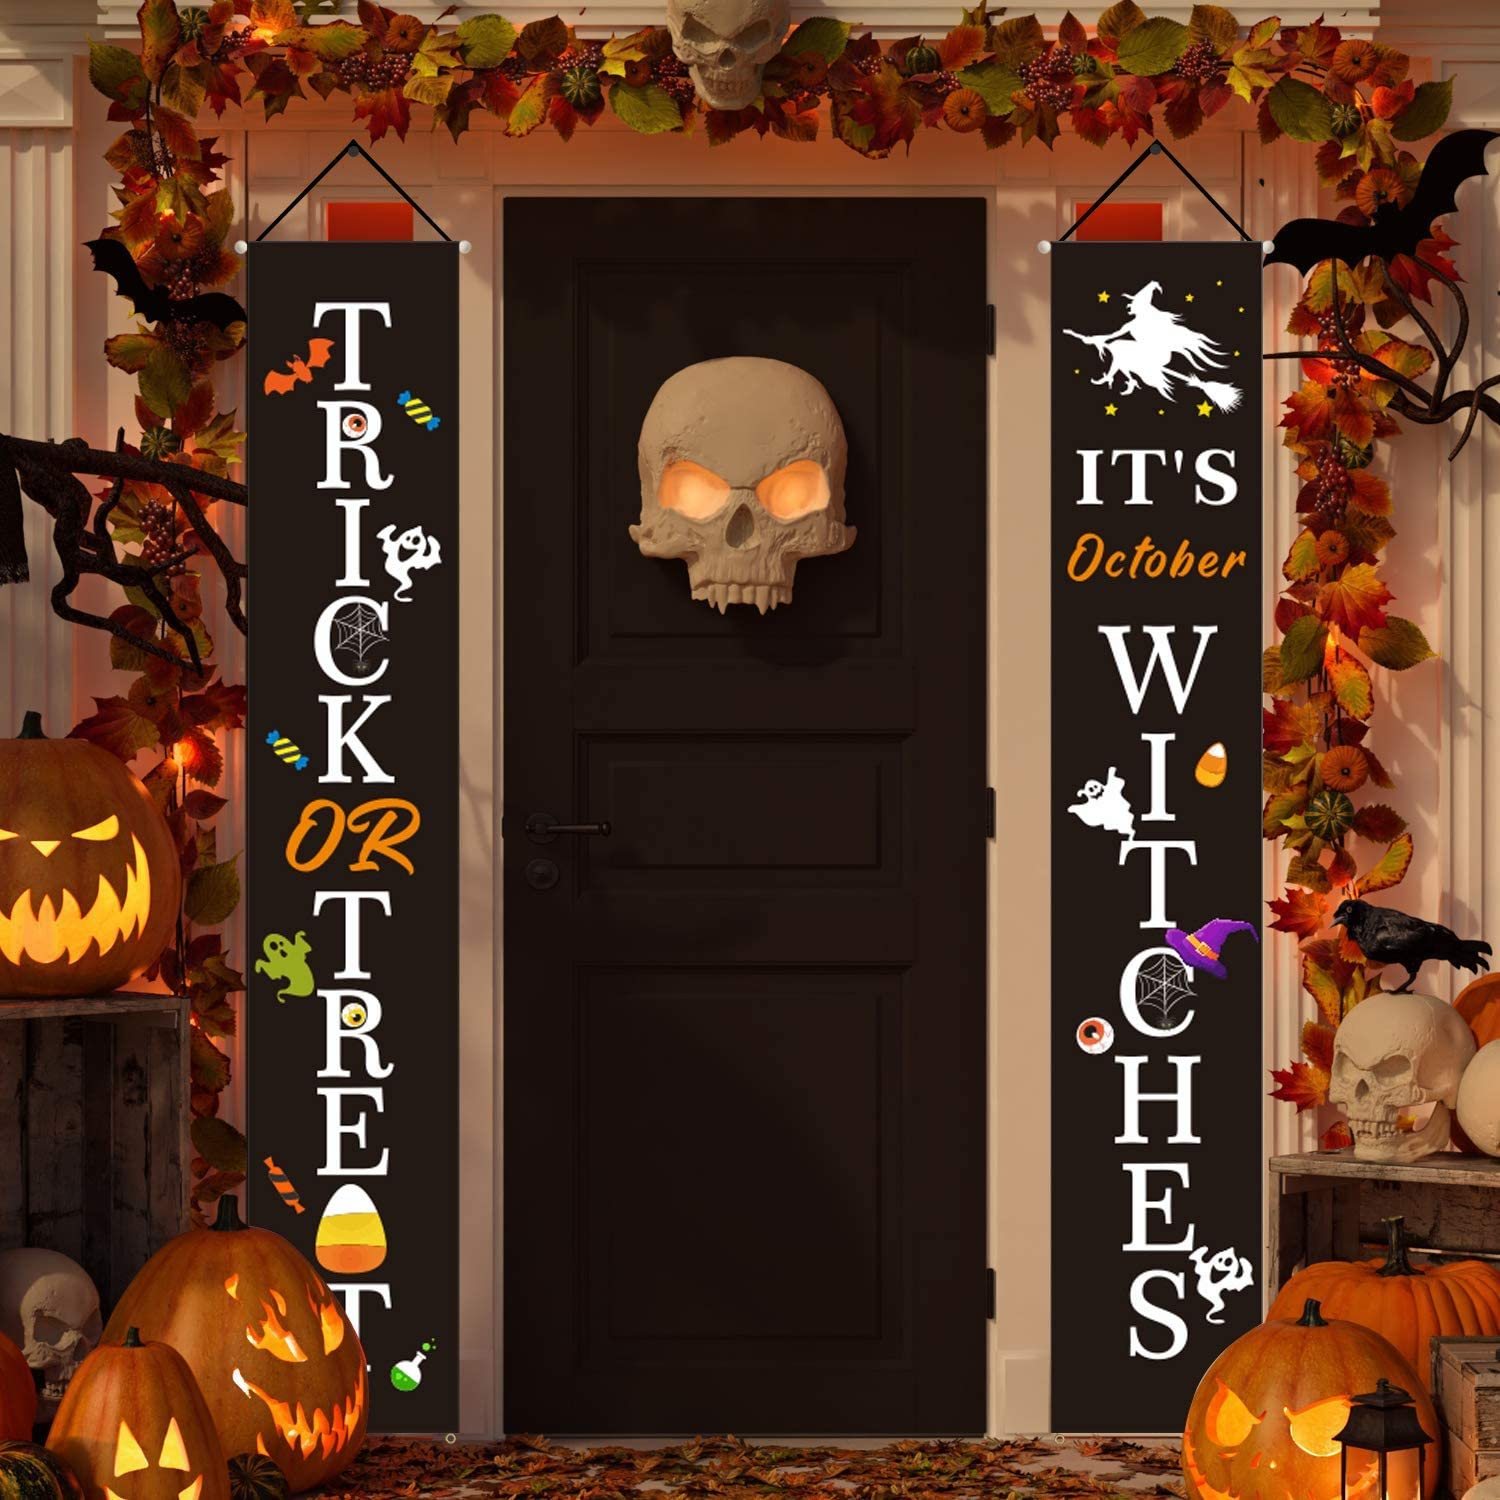 HMASYO Halloween Decorations Banner - Halloween Trick or Treat It's October Witches Welcome Signs Flags for Home Porch Fireplace Front Door Or Outdoor Decor, 600D Oxford Fabric (Black - Witches)